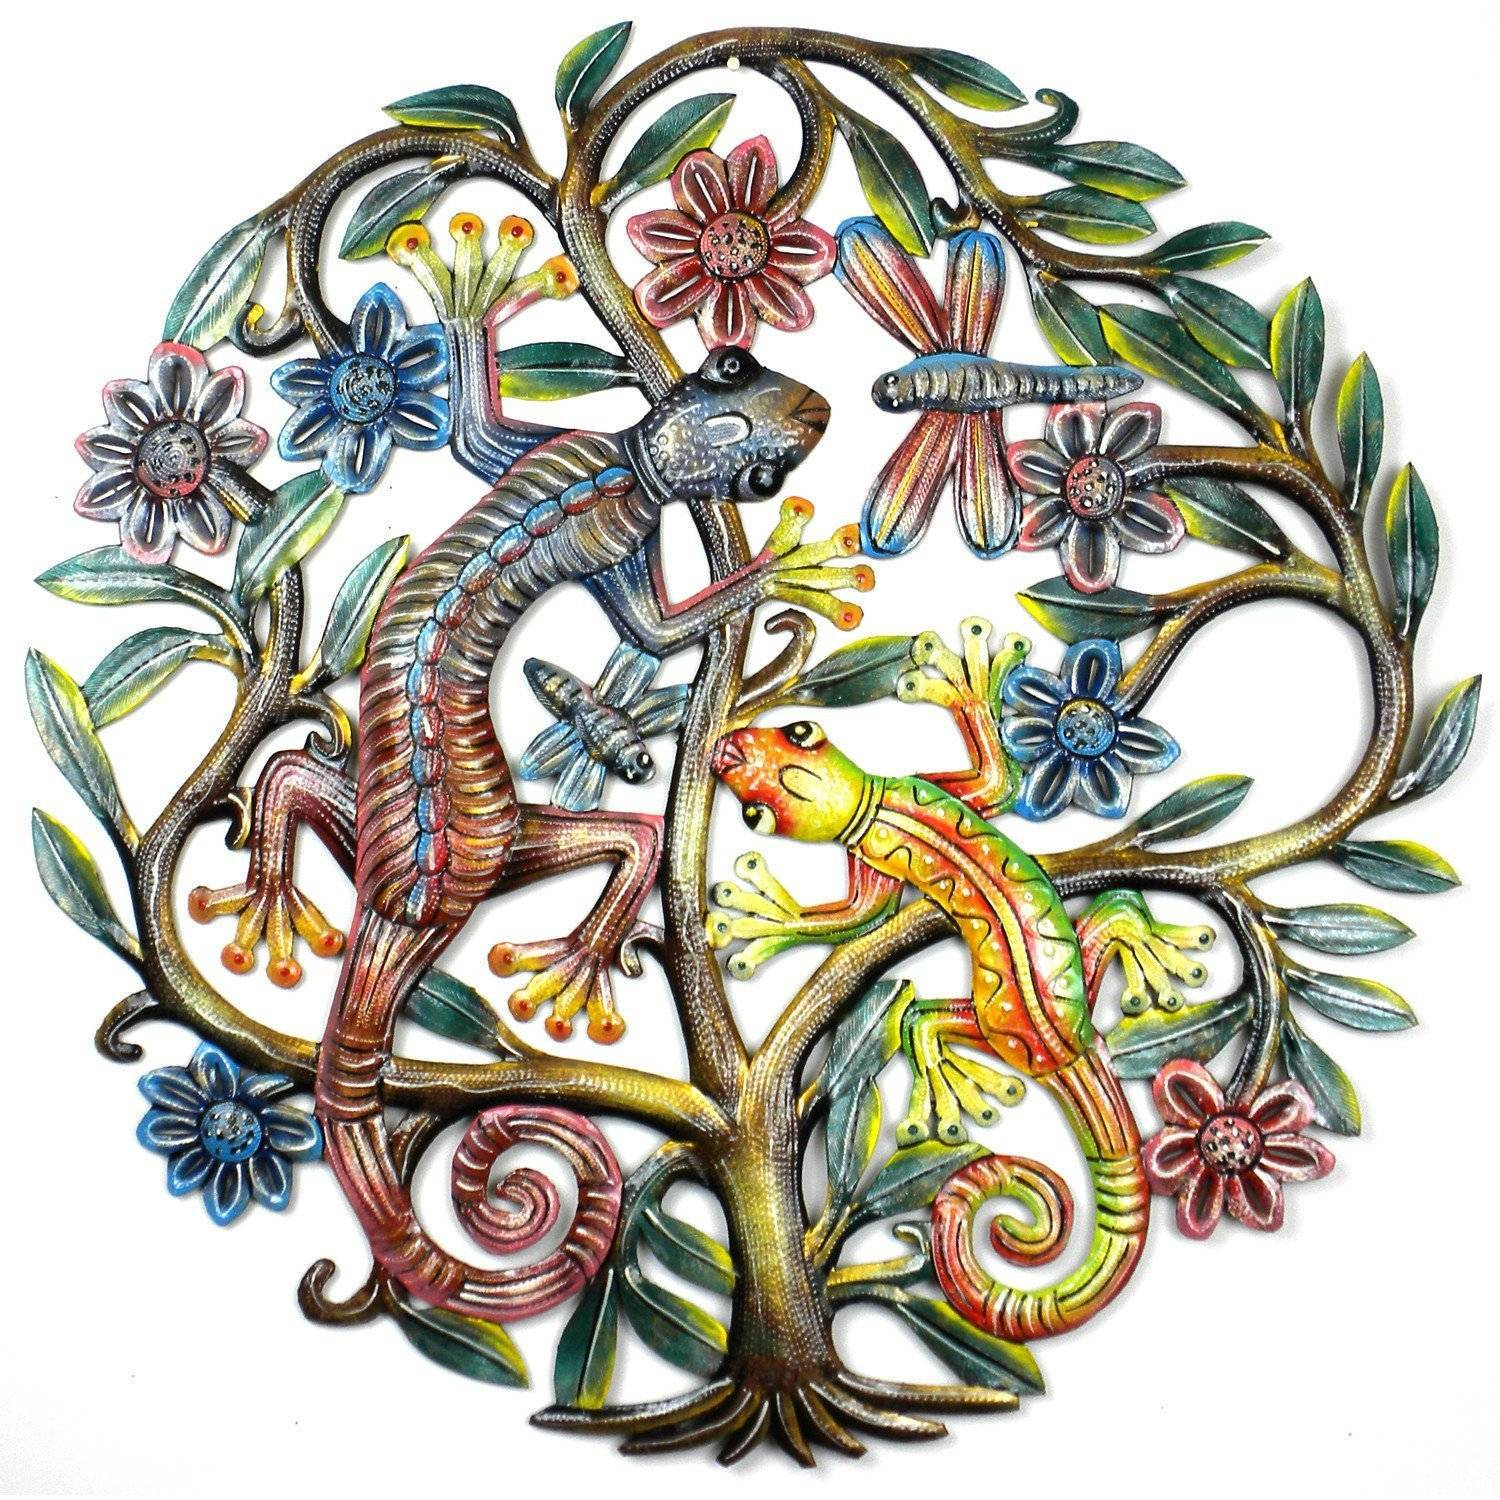 24 inch Painted Gecko Tree of Life - Croix des Bouquets image 2